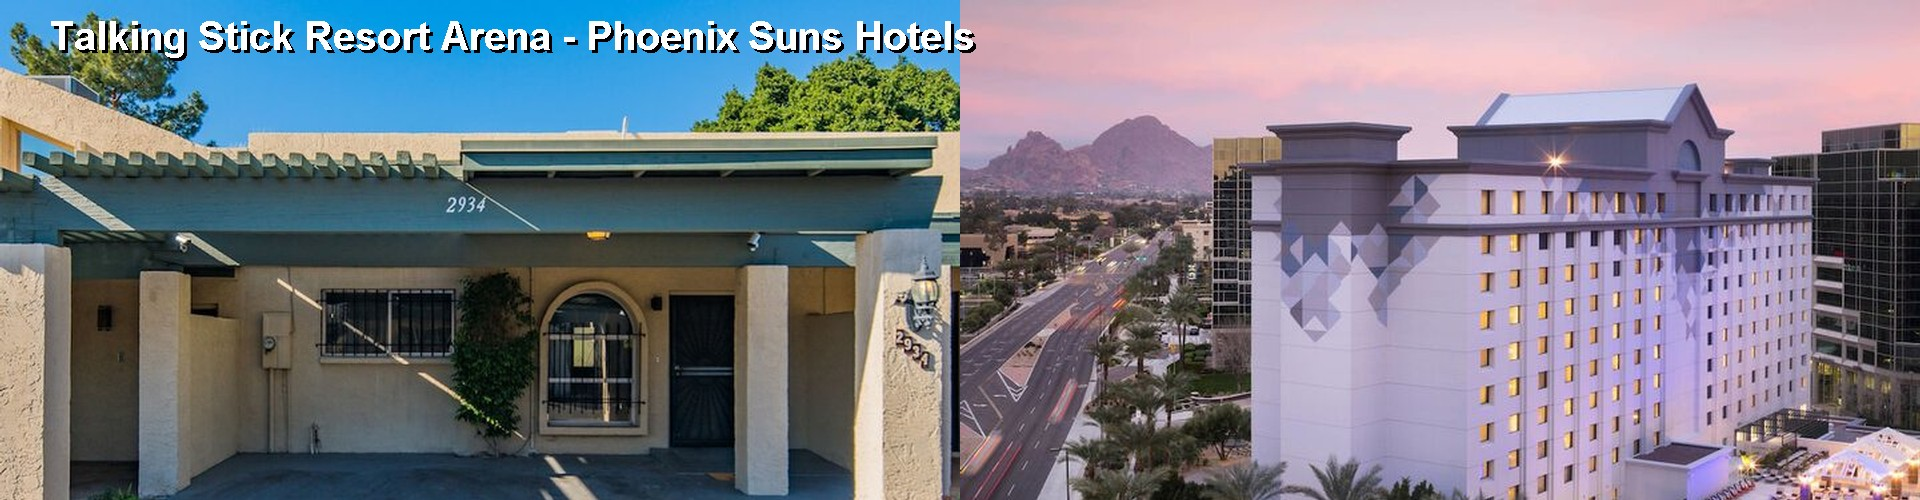 5 Best Hotels near Talking Stick Resort Arena - Phoenix Suns